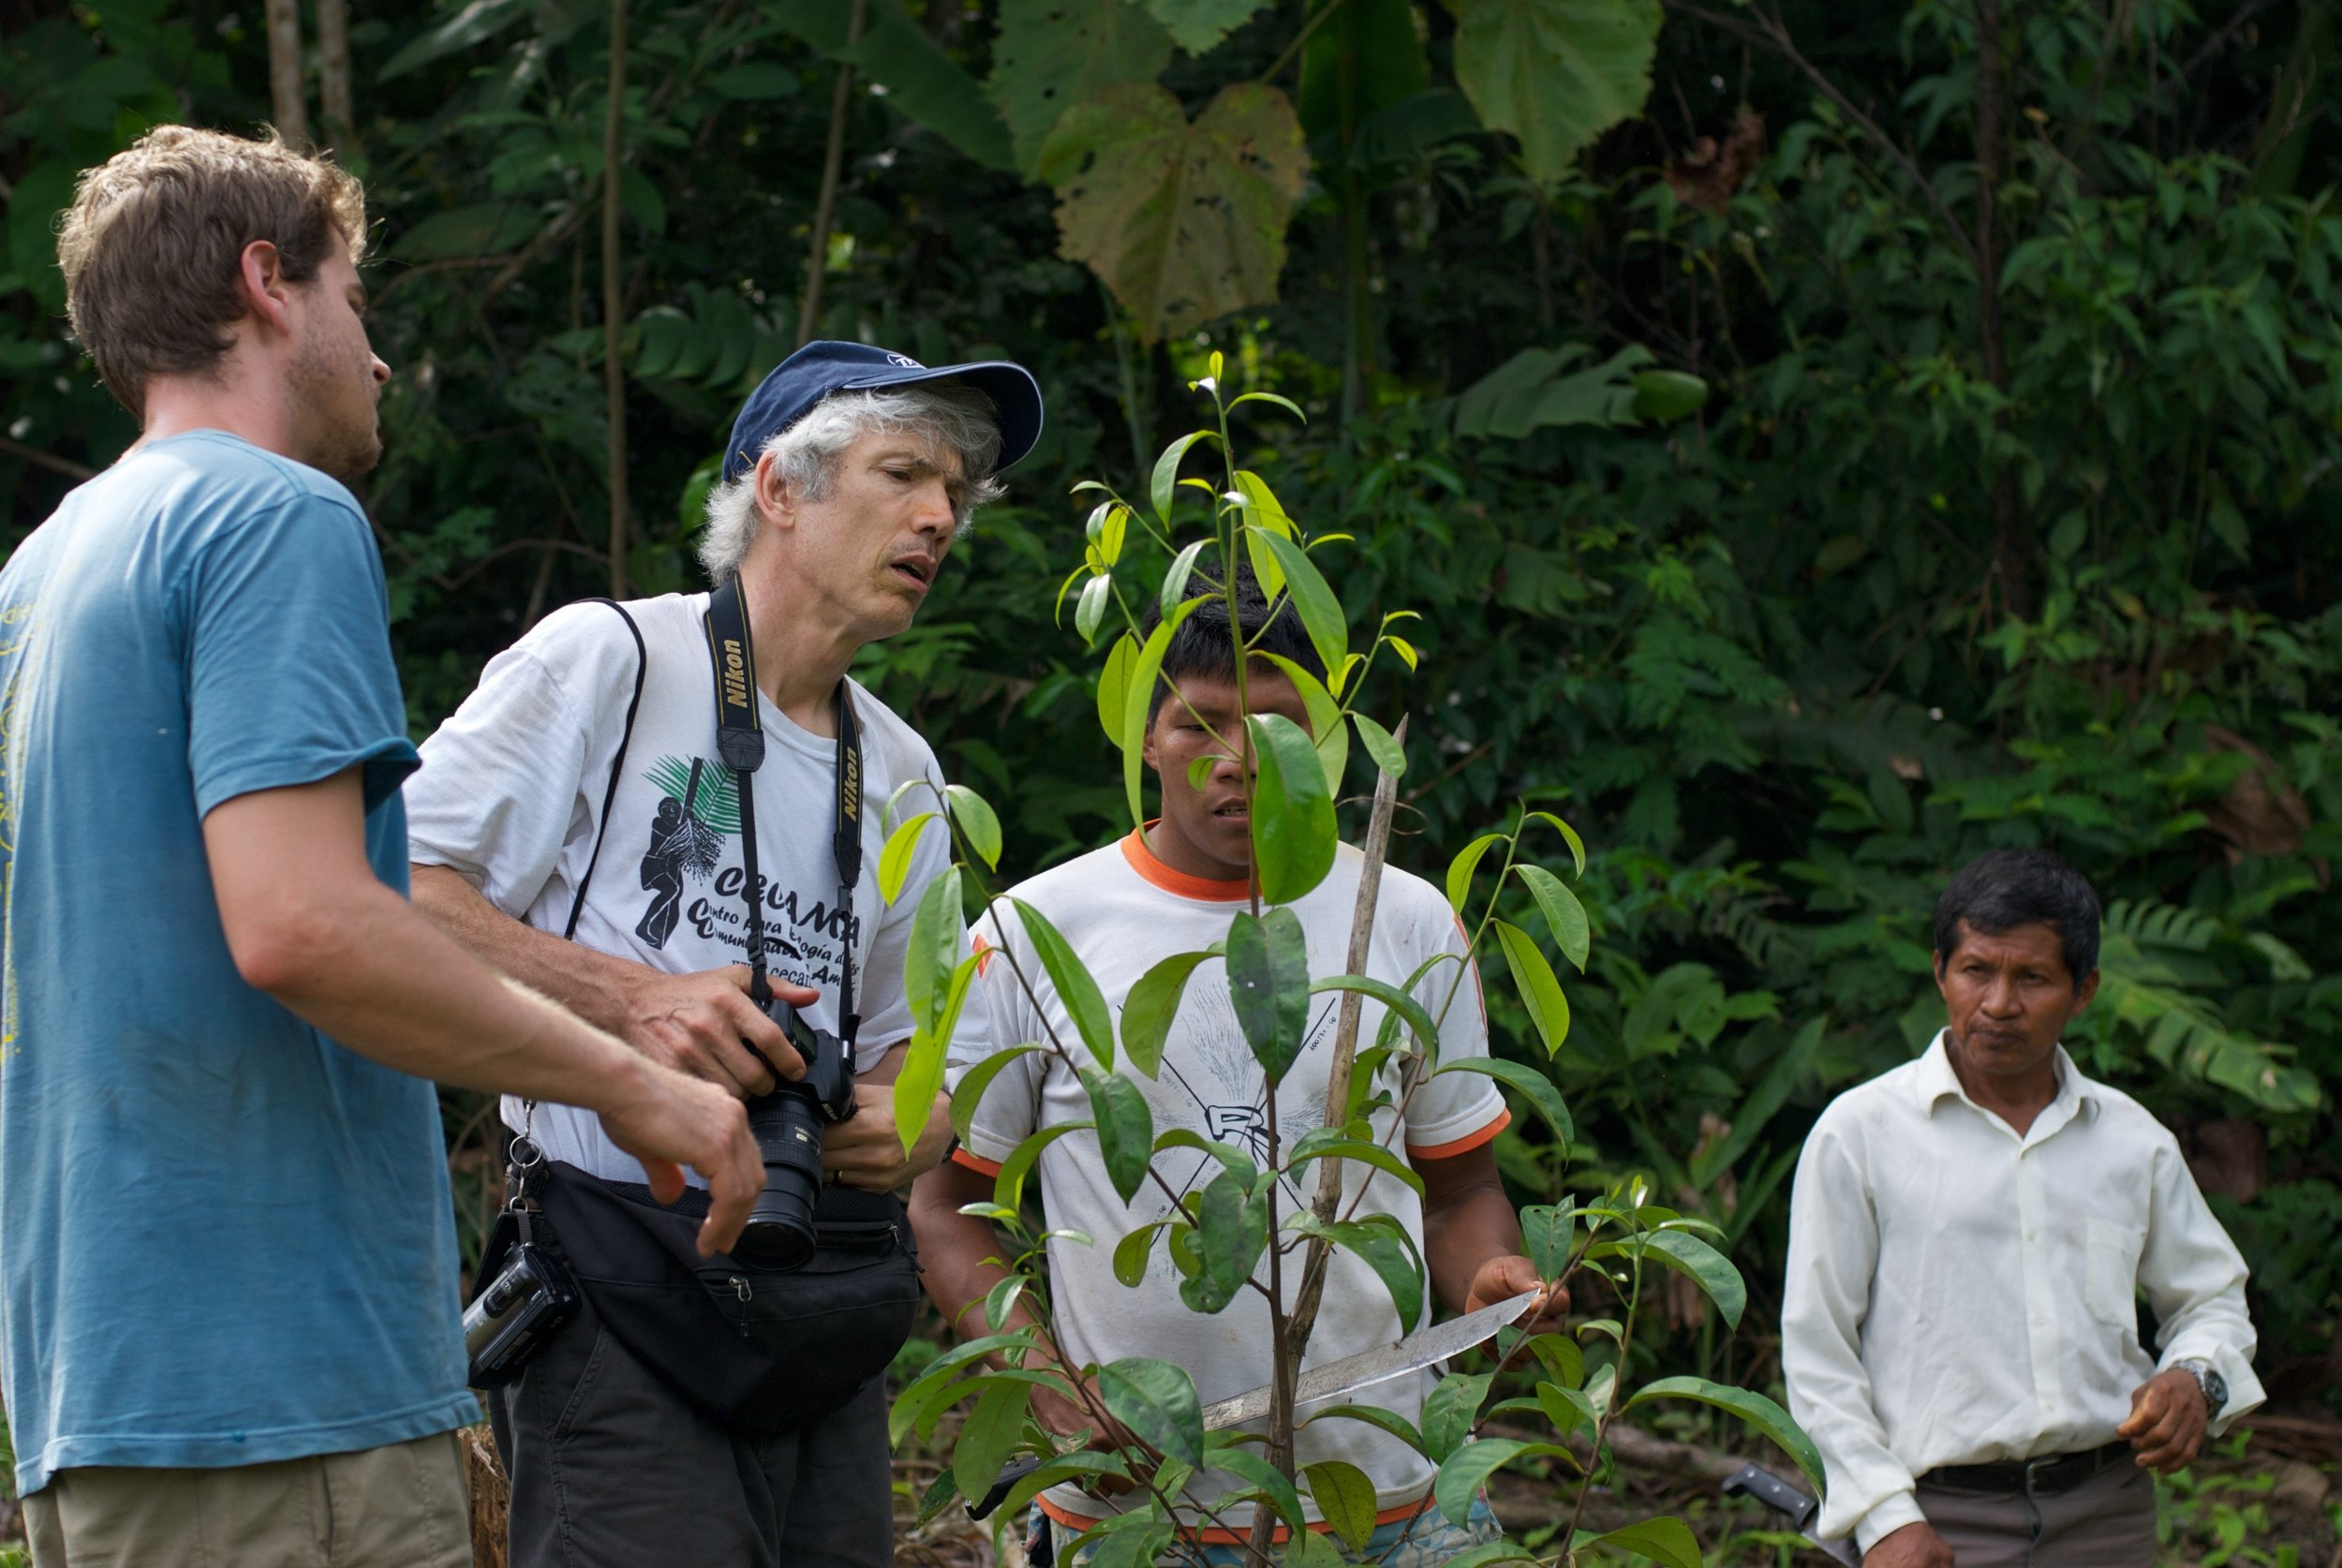 The author (left), Campbell Plowden of CACE, and rosewood farmers of Ampiyacu, Loreto, Peru looking at a young rosewood seedling in 2014, part of Camino Verde's planting efforts there. Photo thanks to Andrew Schwarz